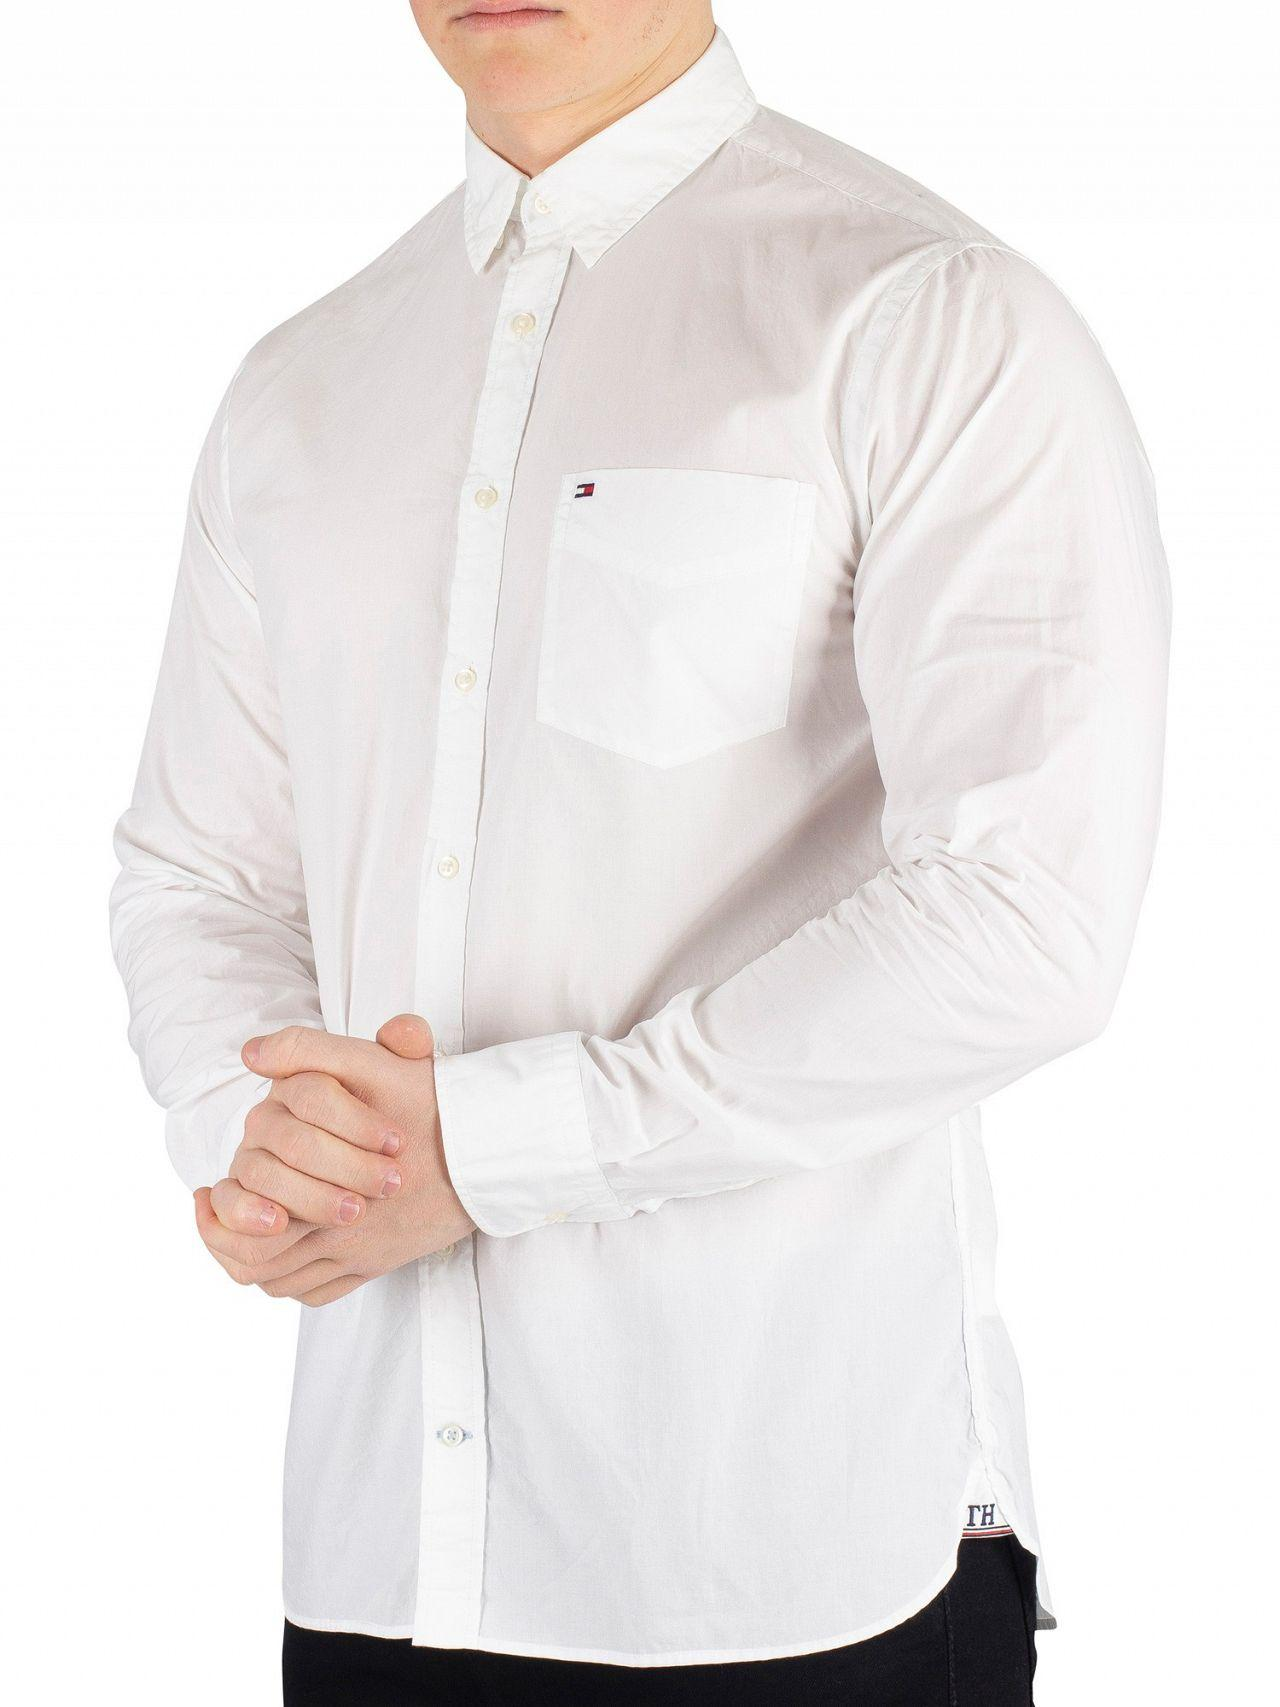 22bbcc56d173 Lyst - Tommy Hilfiger Bright White Essential Poplin Shirt in White ...